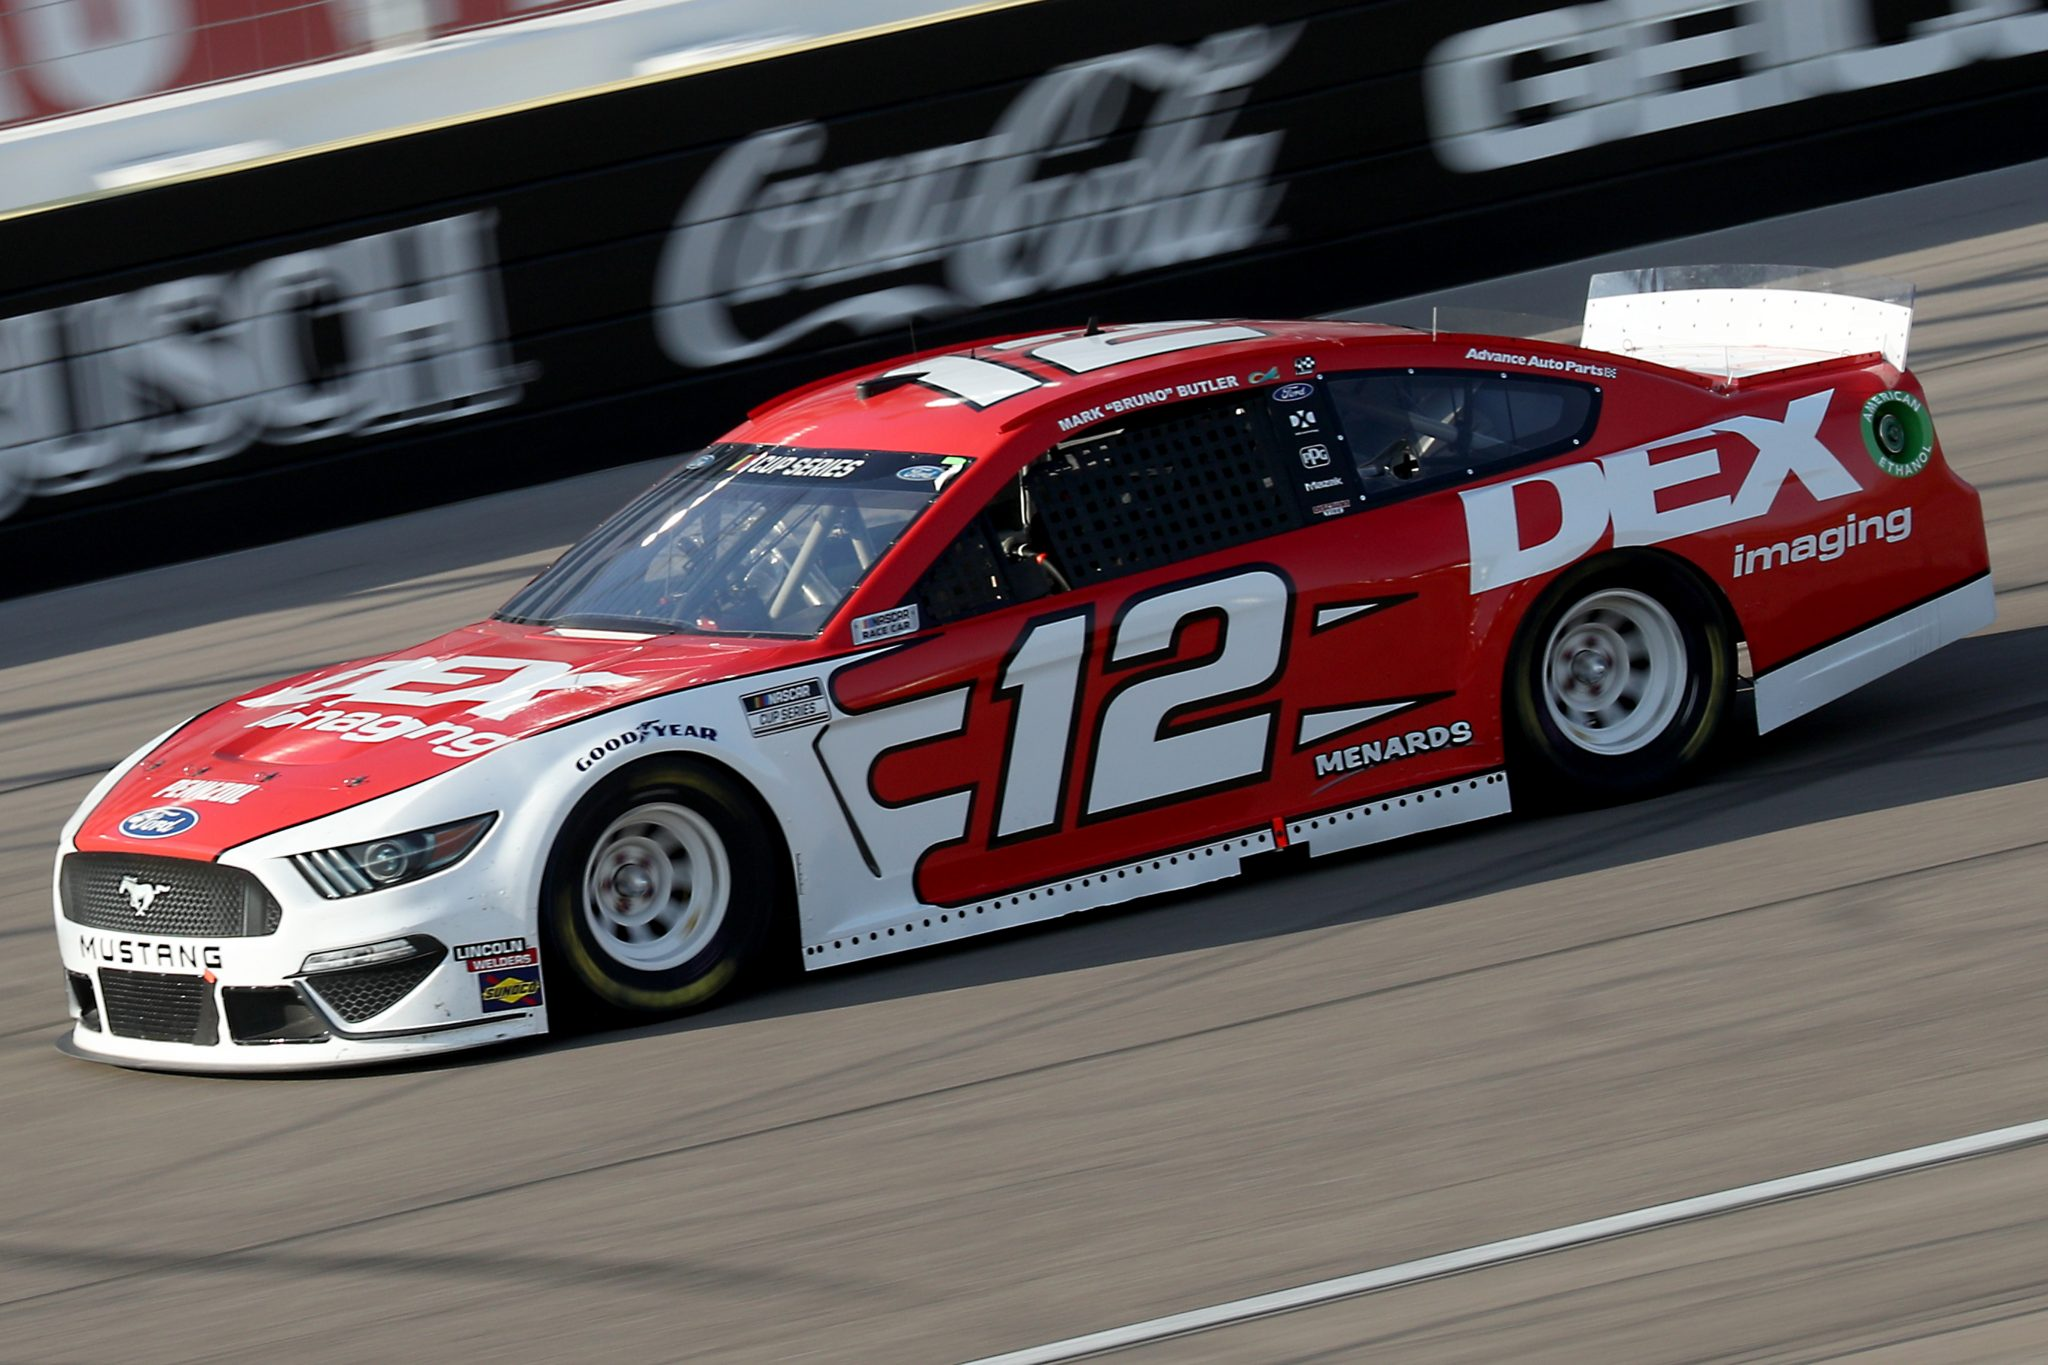 LAS VEGAS, NEVADA - SEPTEMBER 27: Ryan Blaney, driver of the #12 DEX Imaging Ford, drives during the NASCAR Cup Series South Point 400 at Las Vegas Motor Speedway on September 27, 2020 in Las Vegas, Nevada. (Photo by Chris Graythen/Getty Images) | Getty Images